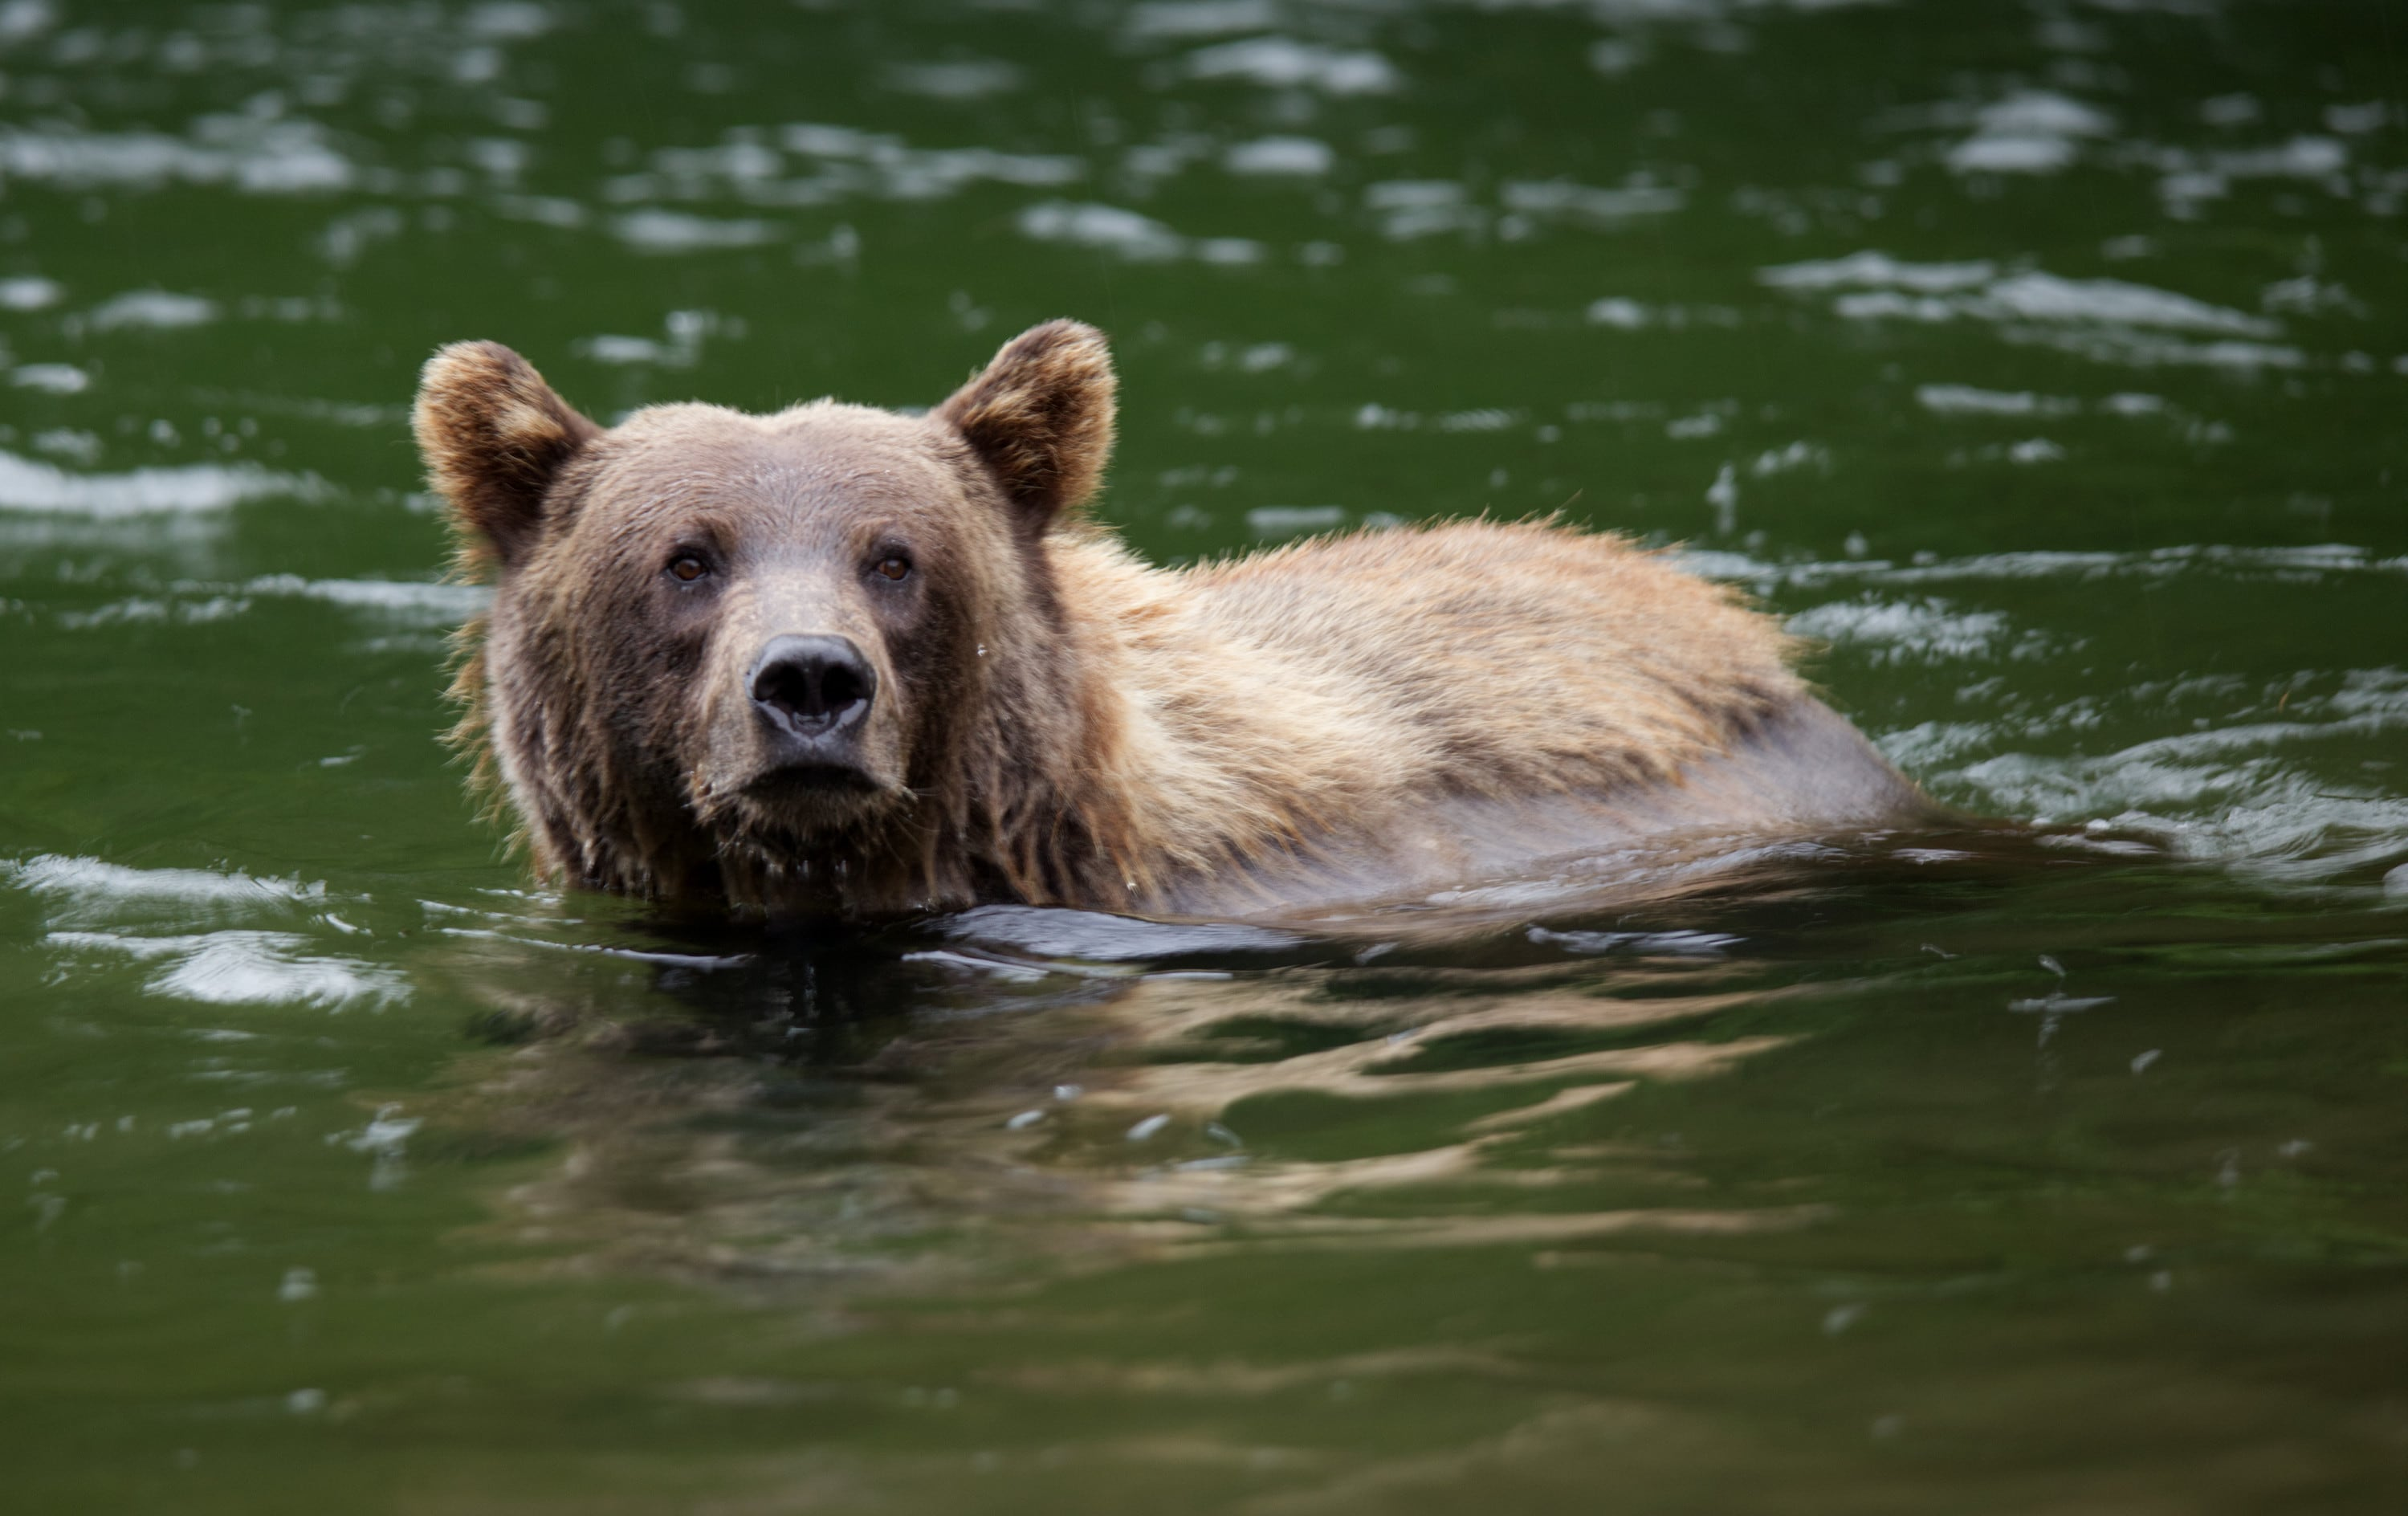 Fern the grizzly bear swims in water looking for salmon. (National Geographic for Disney+/Samuel Ellis)